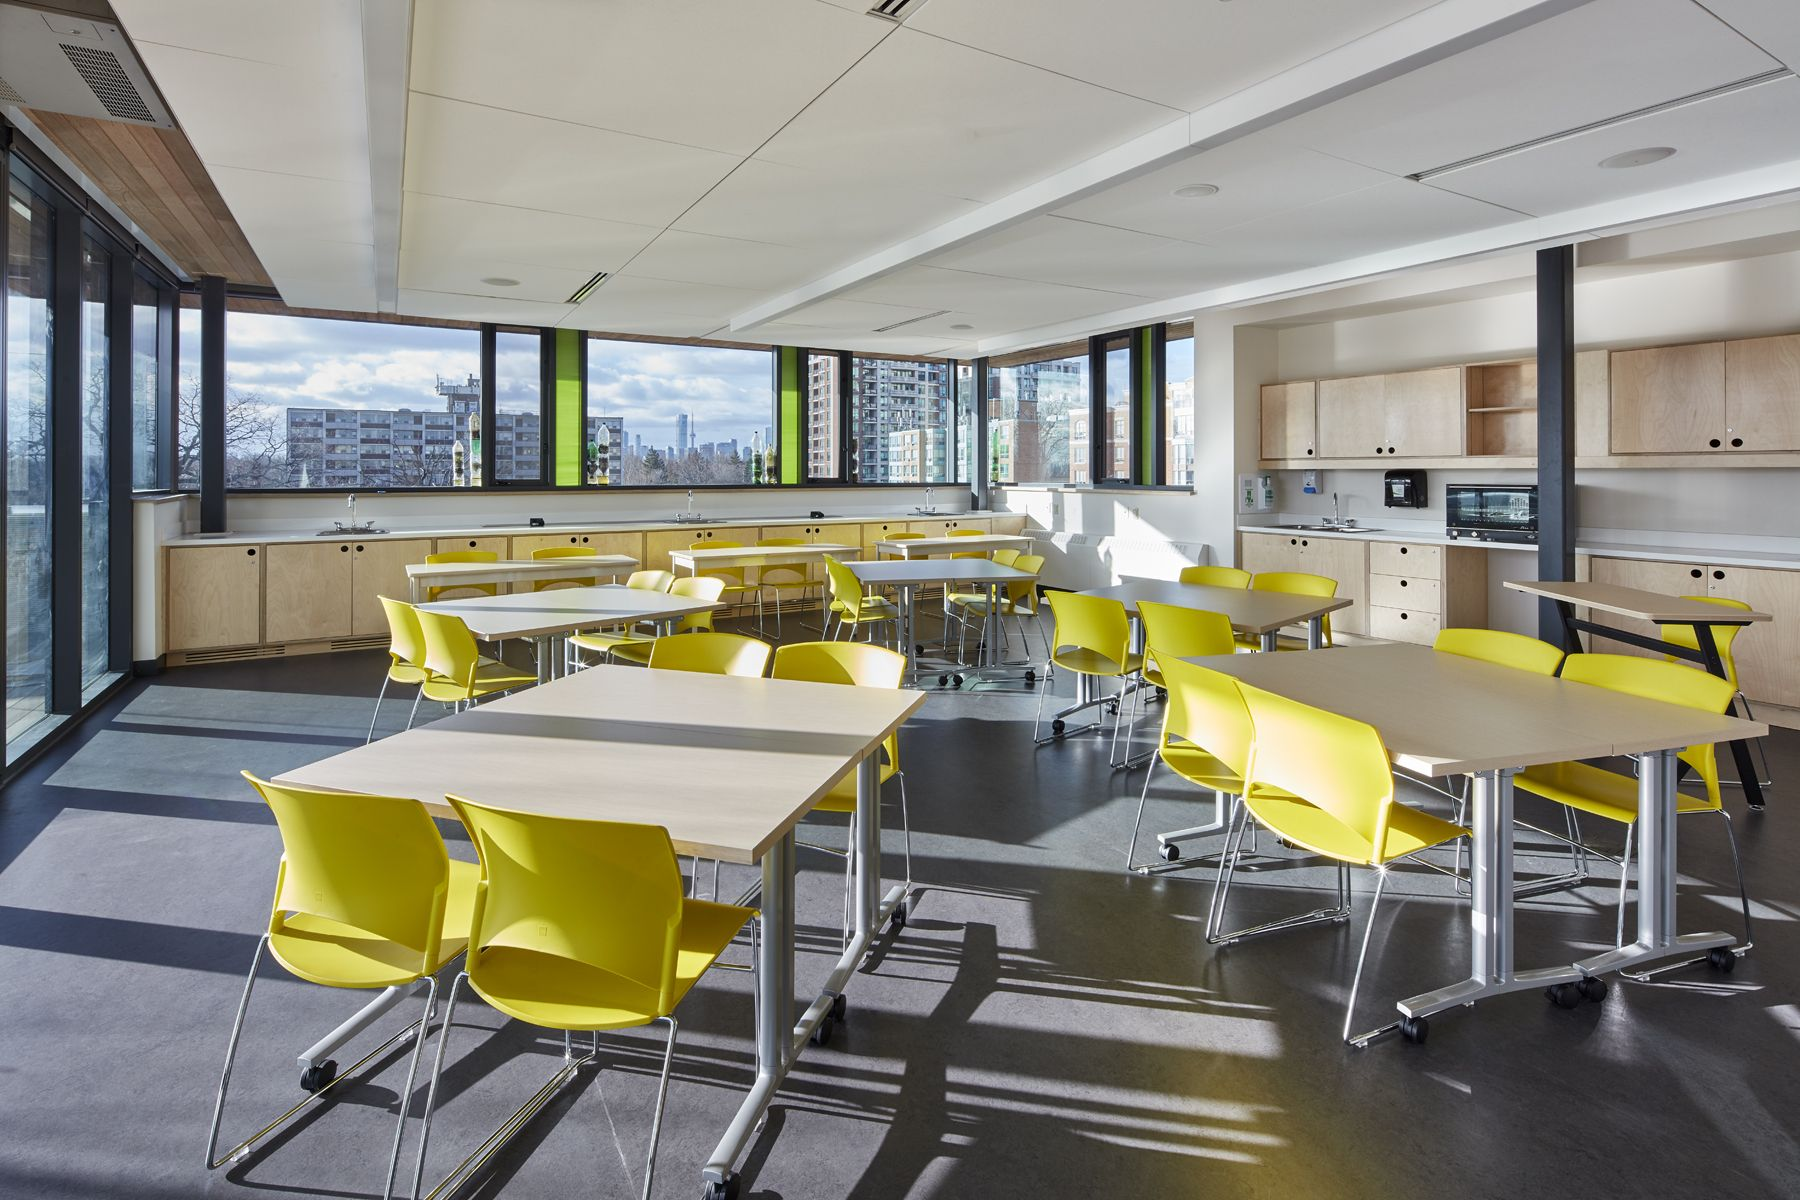 Our versatile rooftop classroom supports everything from classwork to culinary creations, hosting courses including Food and Culture and Environmental Science.